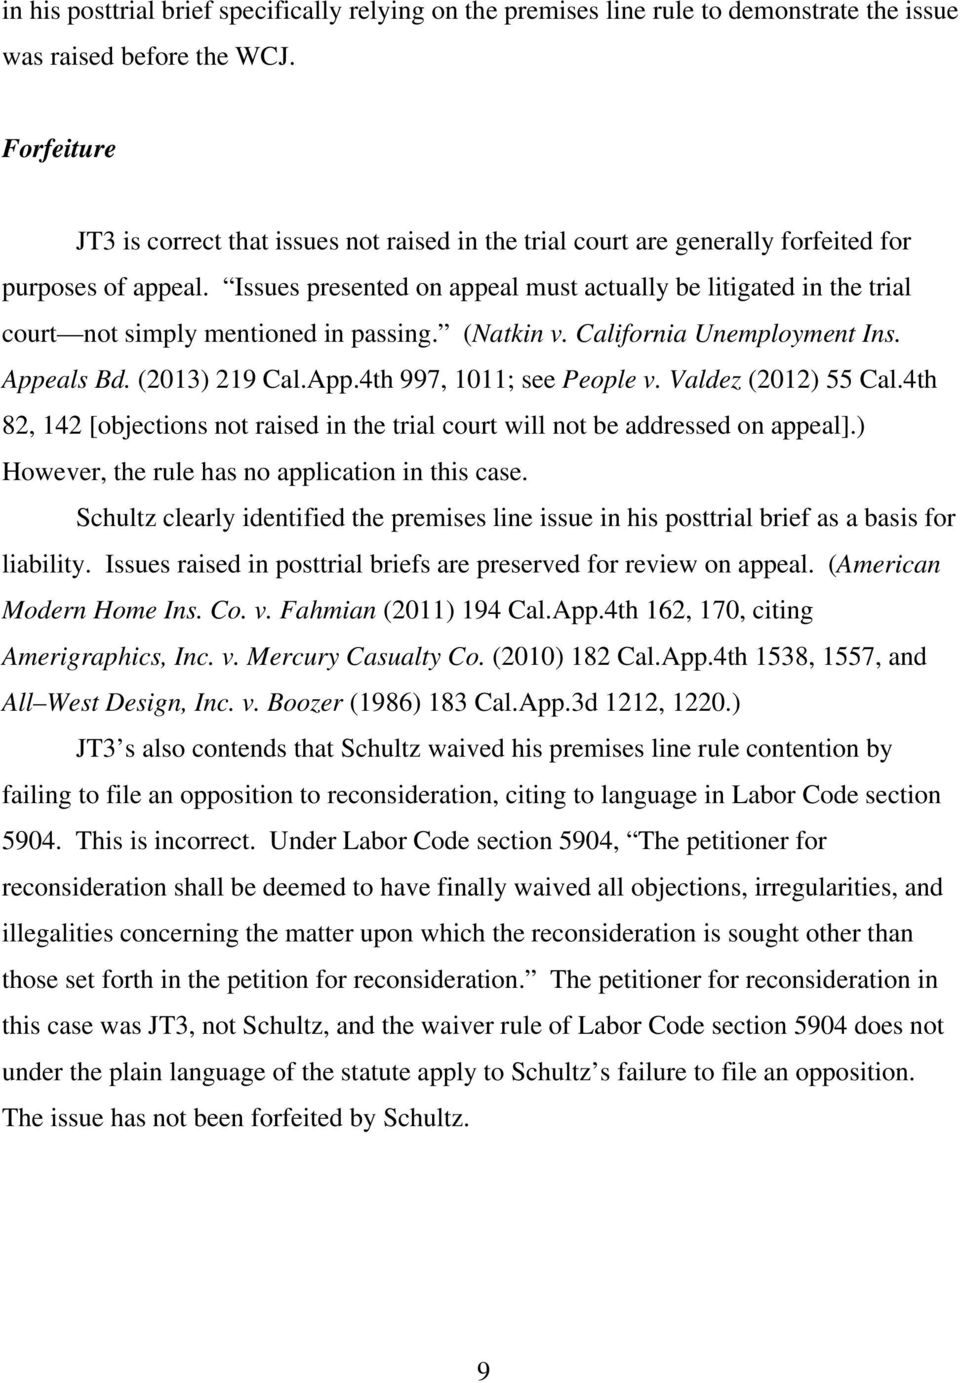 Issues presented on appeal must actually be litigated in the trial court not simply mentioned in passing. (Natkin v. California Unemployment Ins. Appeals Bd. (2013) 219 Cal.App.4th 997, 1011; see People v.